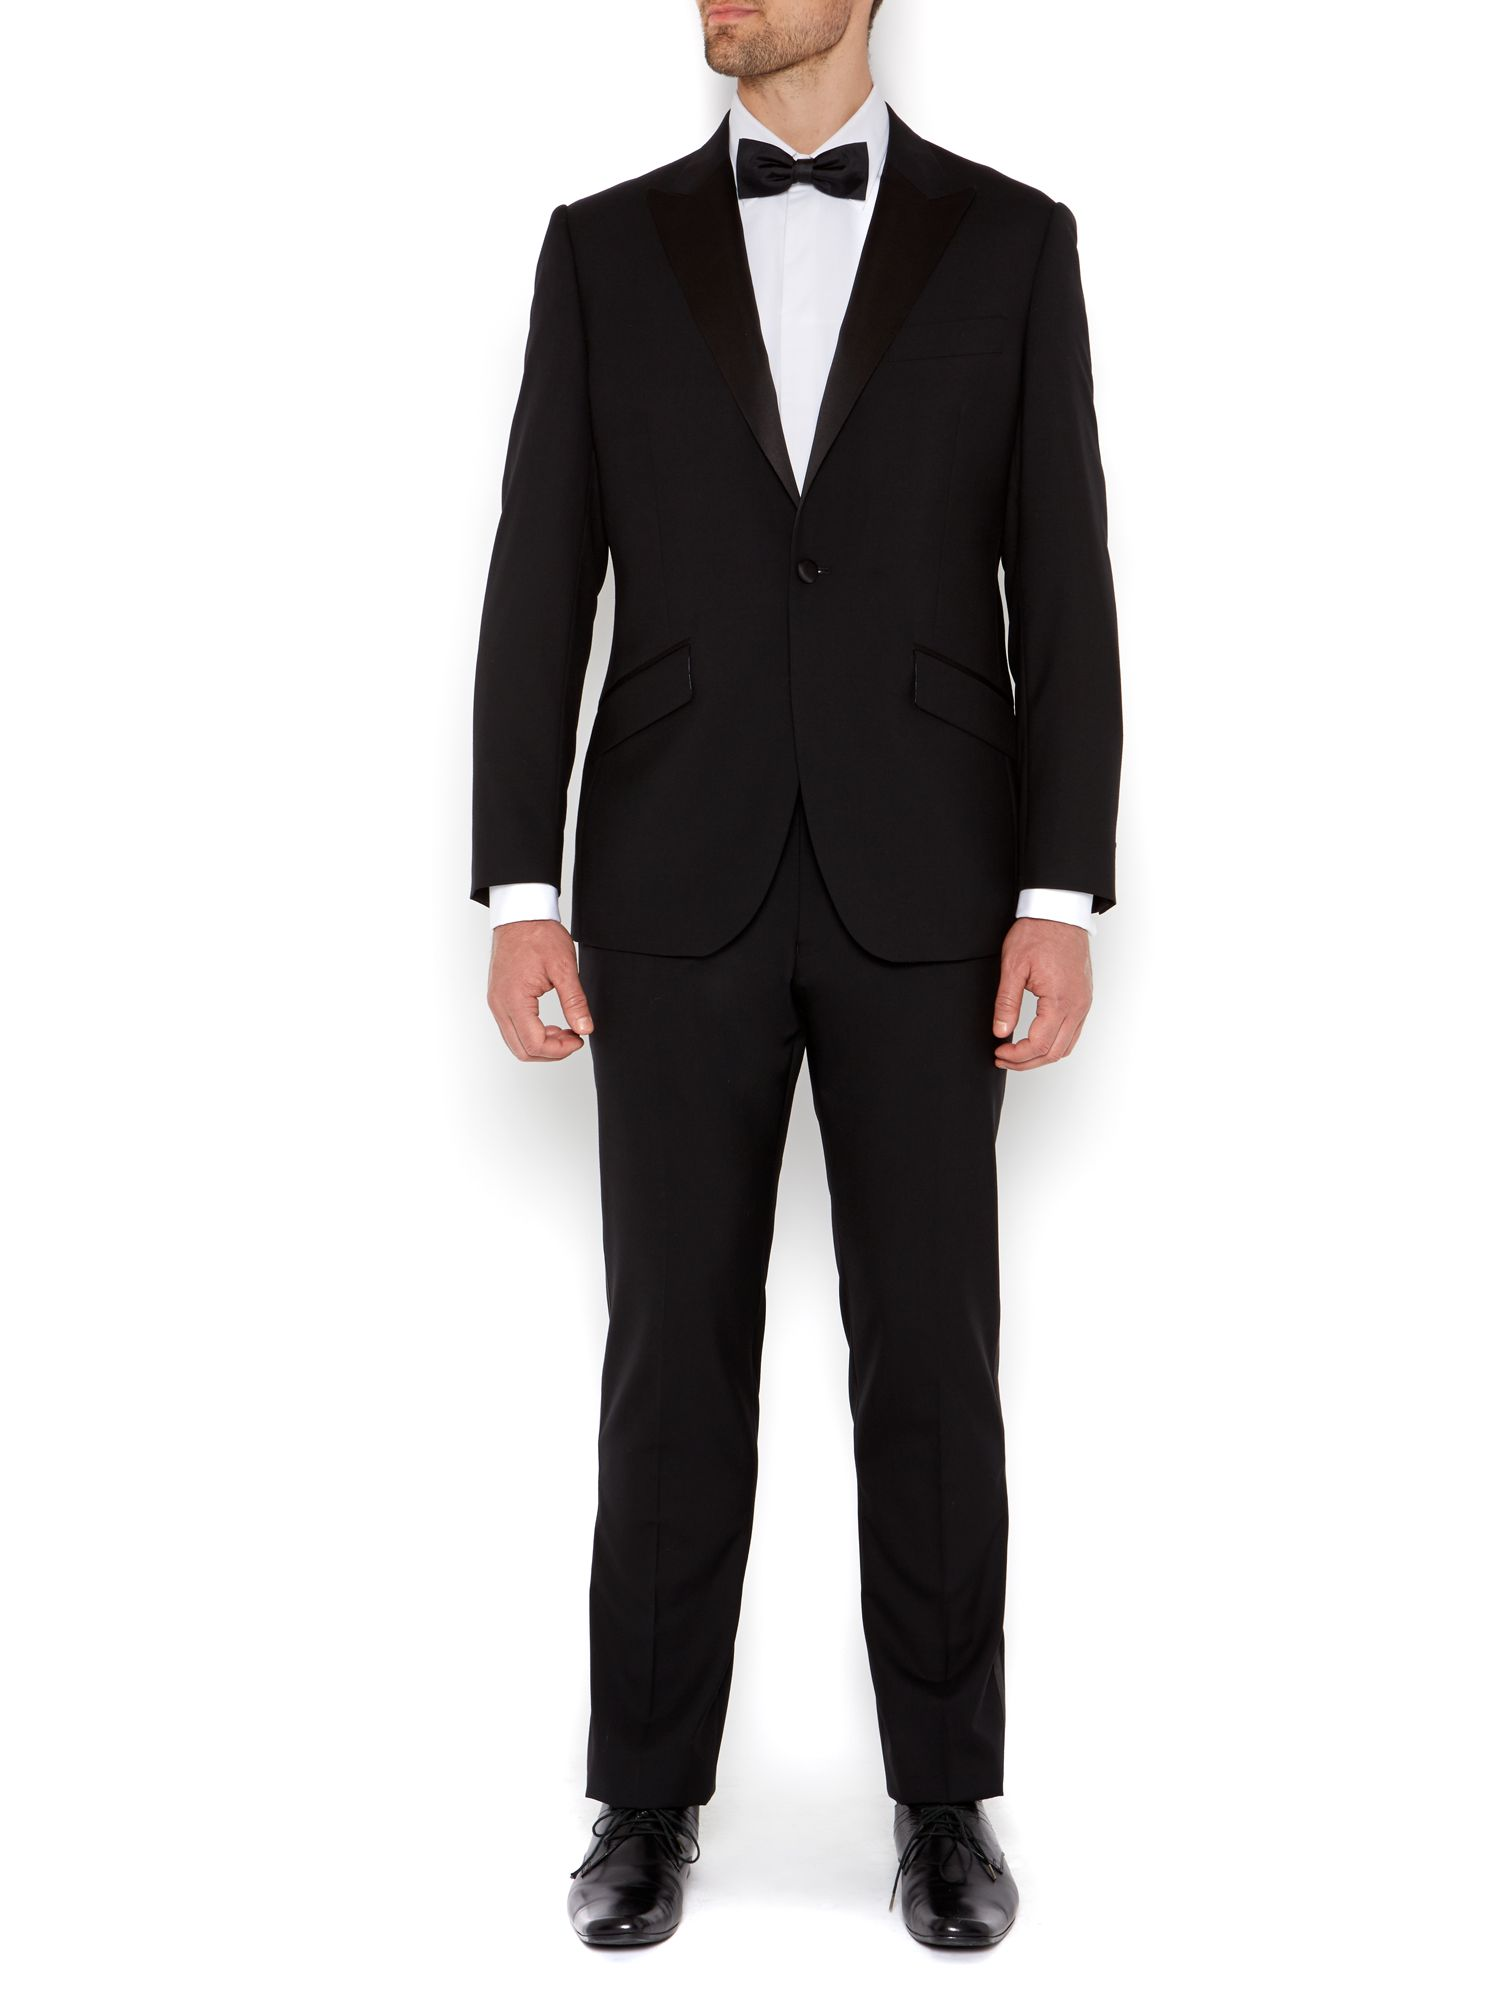 Benson black evening jacket with satin peak lapel